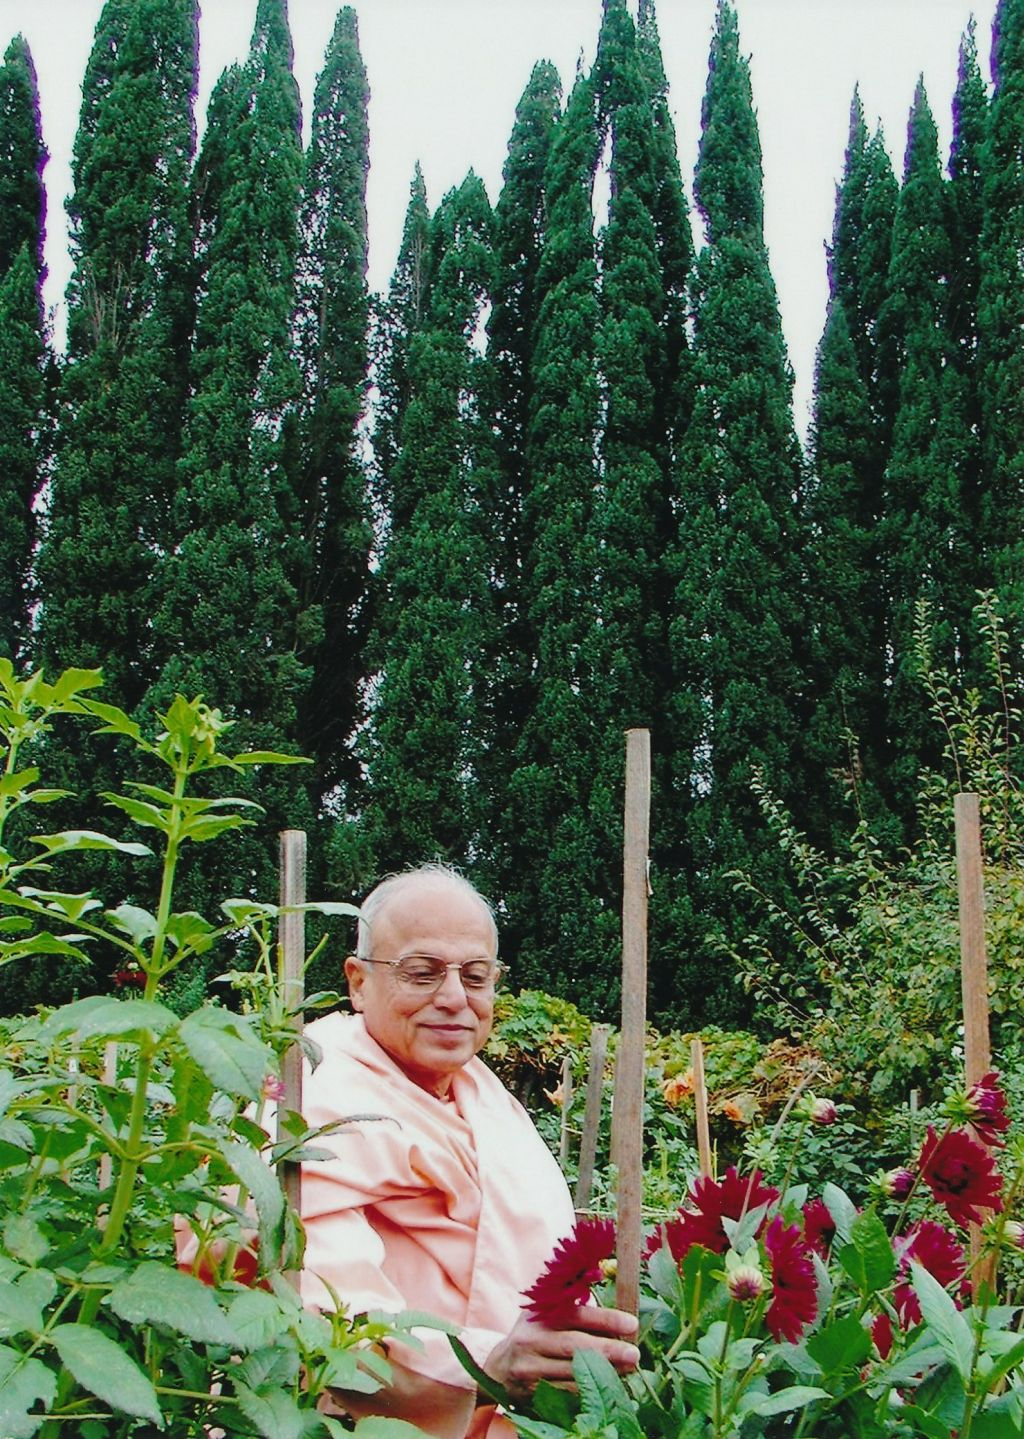 Swami Prapannananda in the Daliah garden